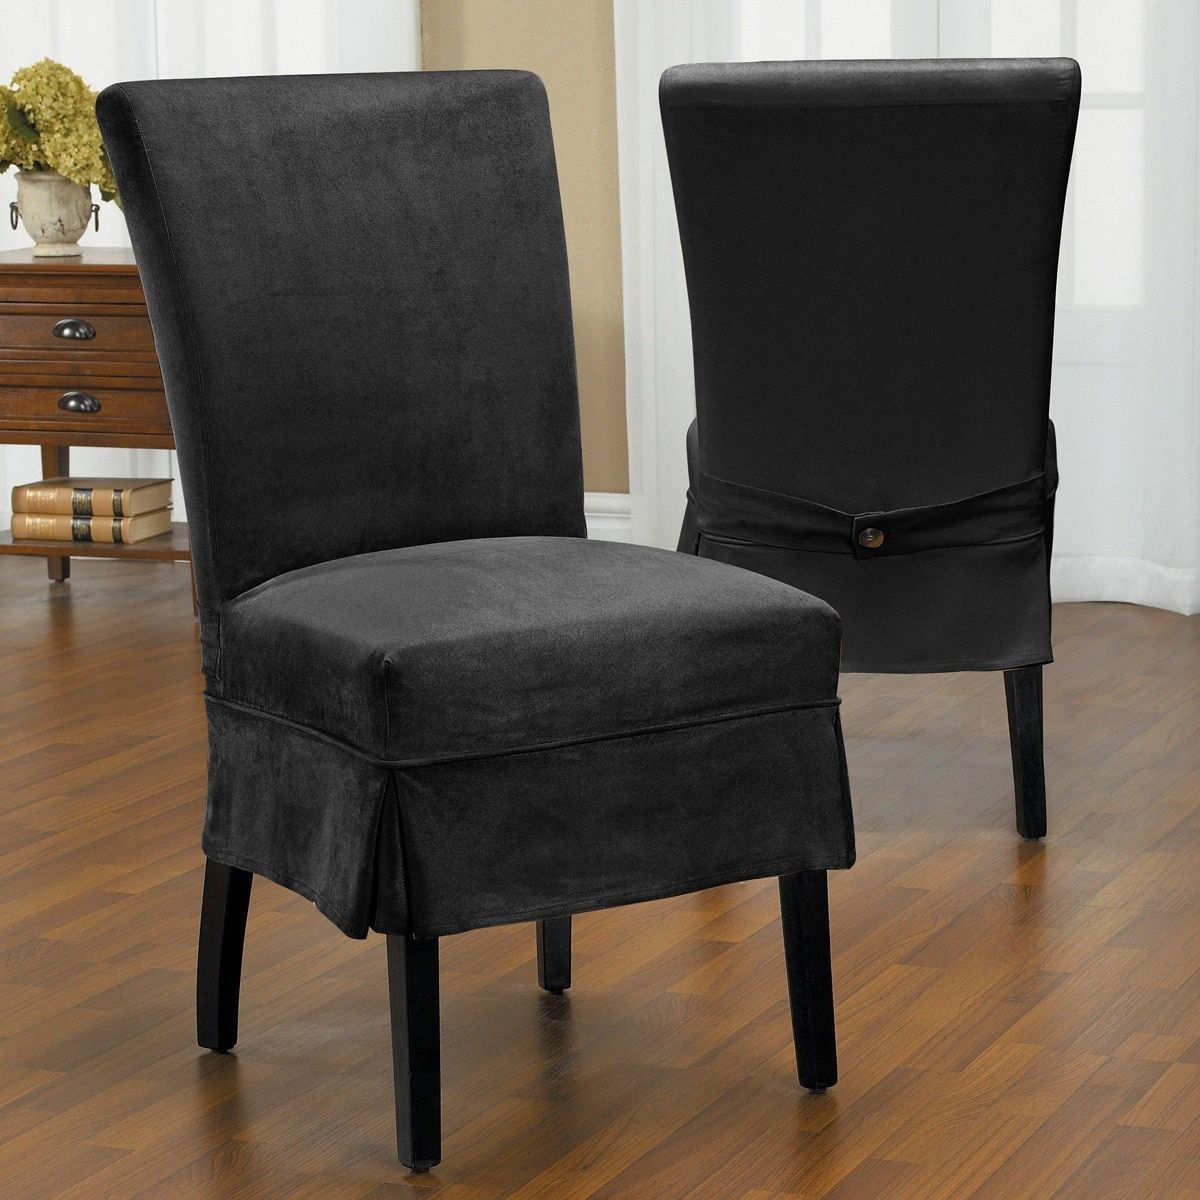 QuickCover Luxury Suede Mid Pleat Relaxed Fit Dining Chair